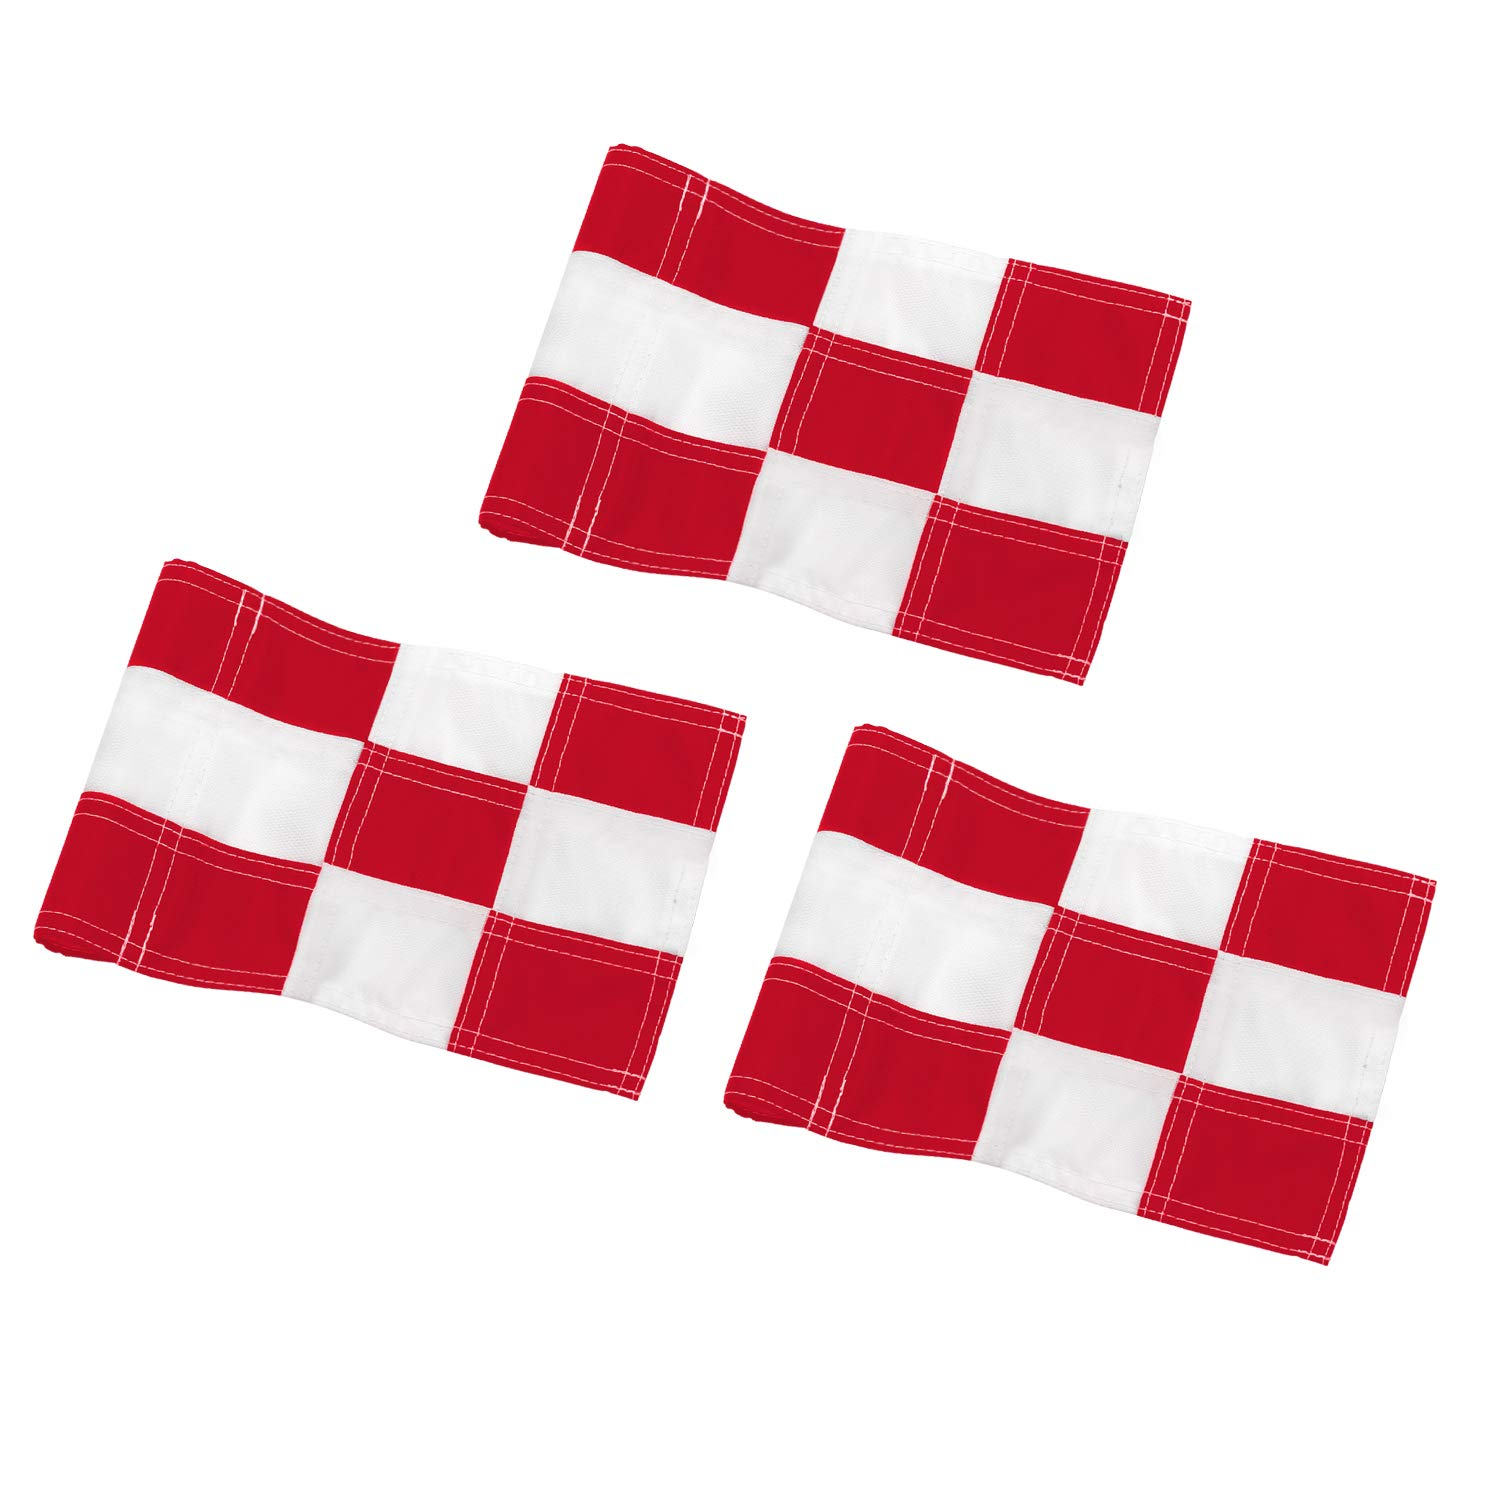 KINGTOP Checkered Golf Flag with Plastic Insert, Putting Green Flags for Yard, Indoor/Outdoor, Garden Pin Flags, 420D Premium Nylon Flag, 8'' L x 6'' H, White&Red, 3-Pack by KINGTOP